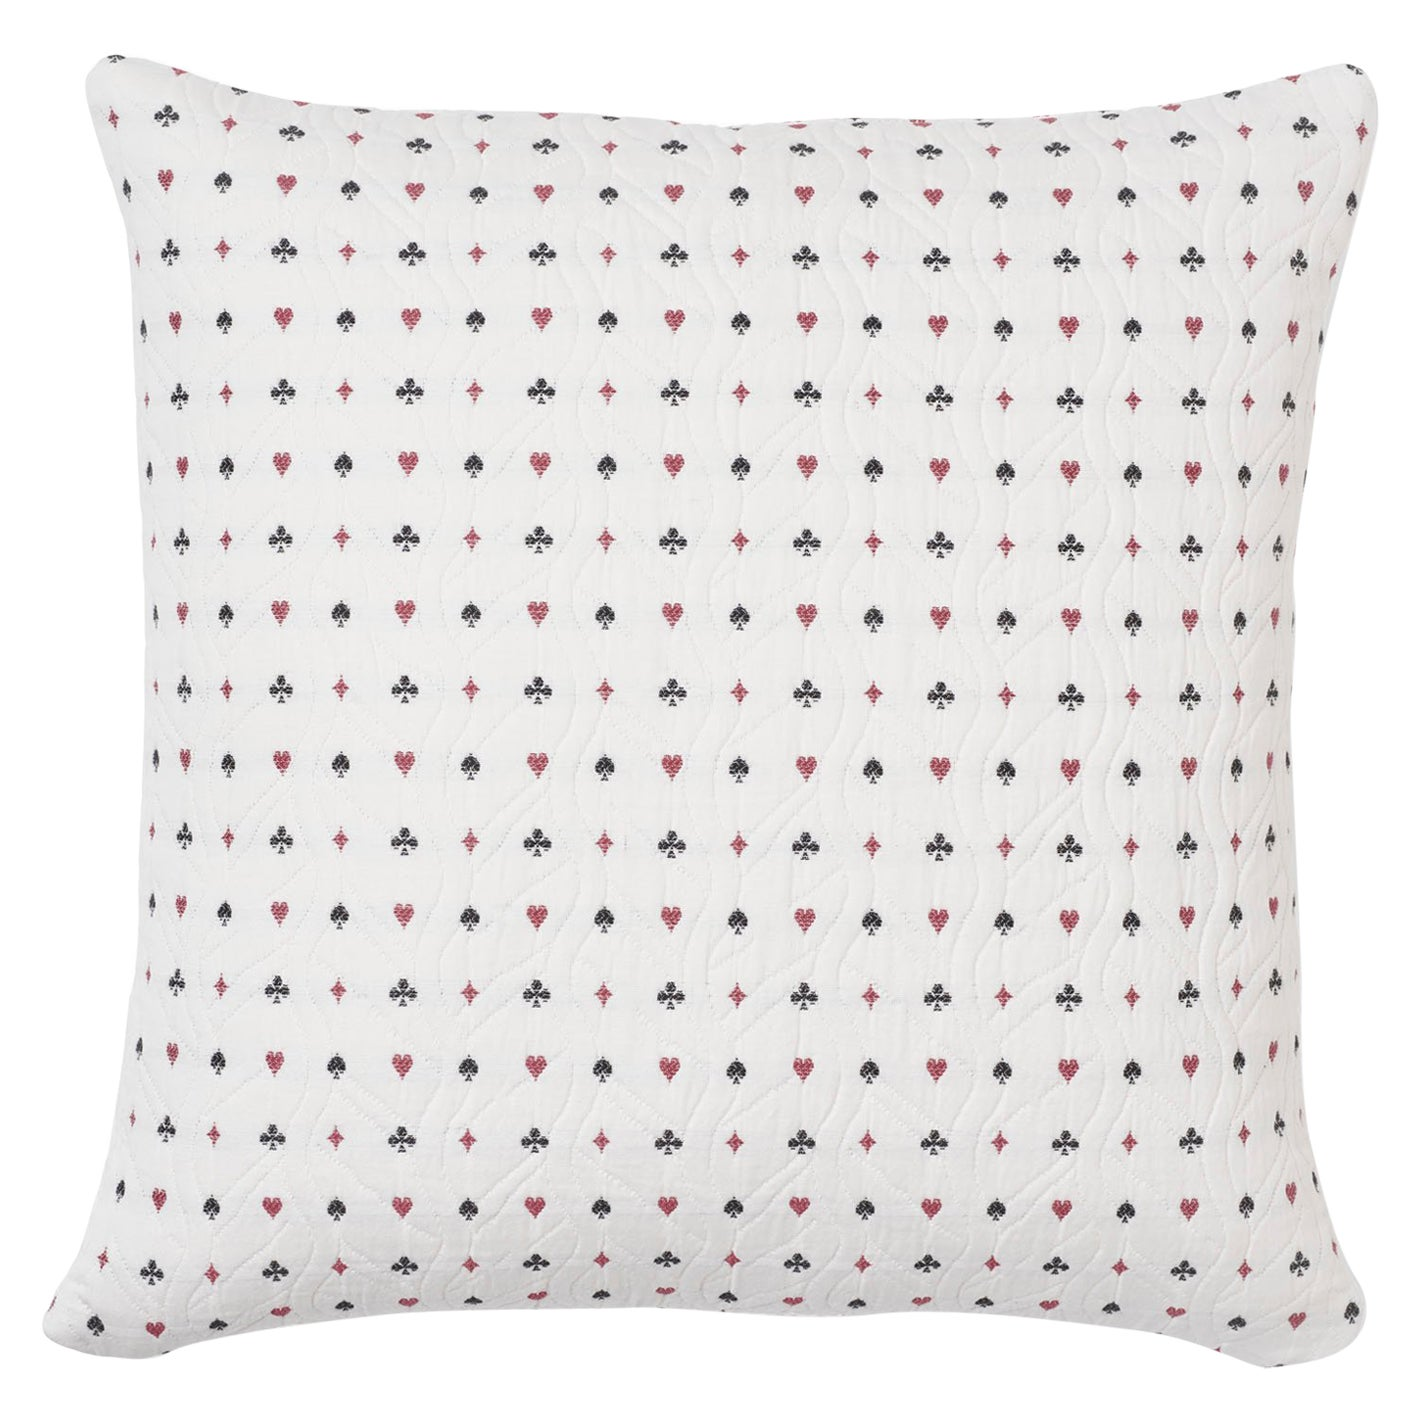 Schumacher Le Joueur Rouge Noir Two-Sided Cotton Pillow